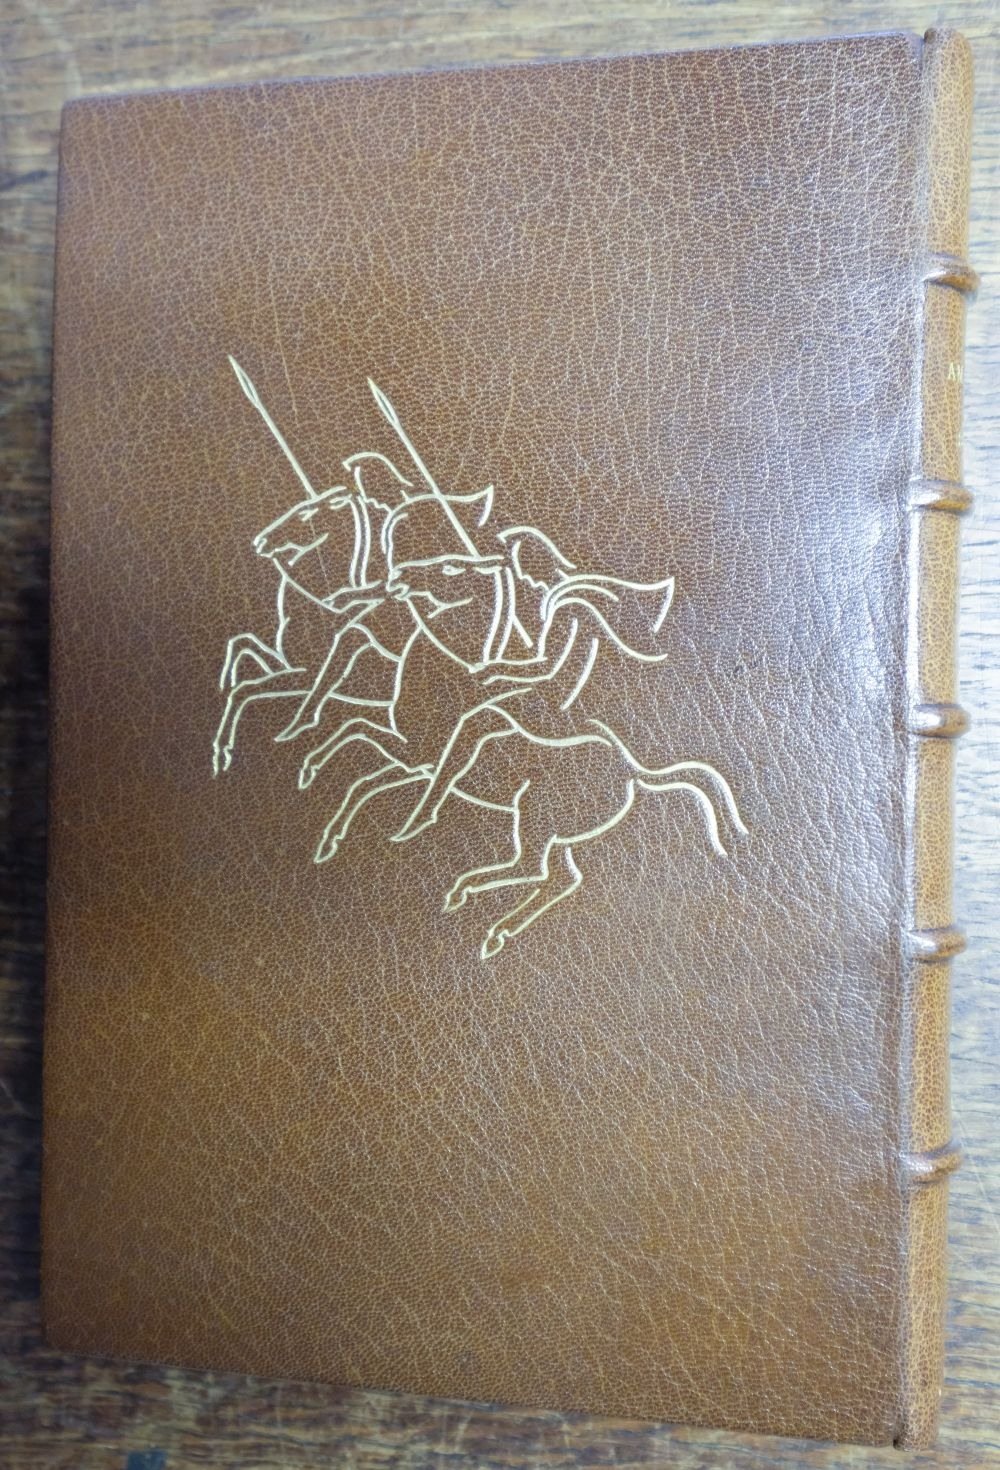 Golden Cockerel Press. The Amazons, A Novel by Ivor Bannet, 1948, signed in special binding - Image 4 of 8